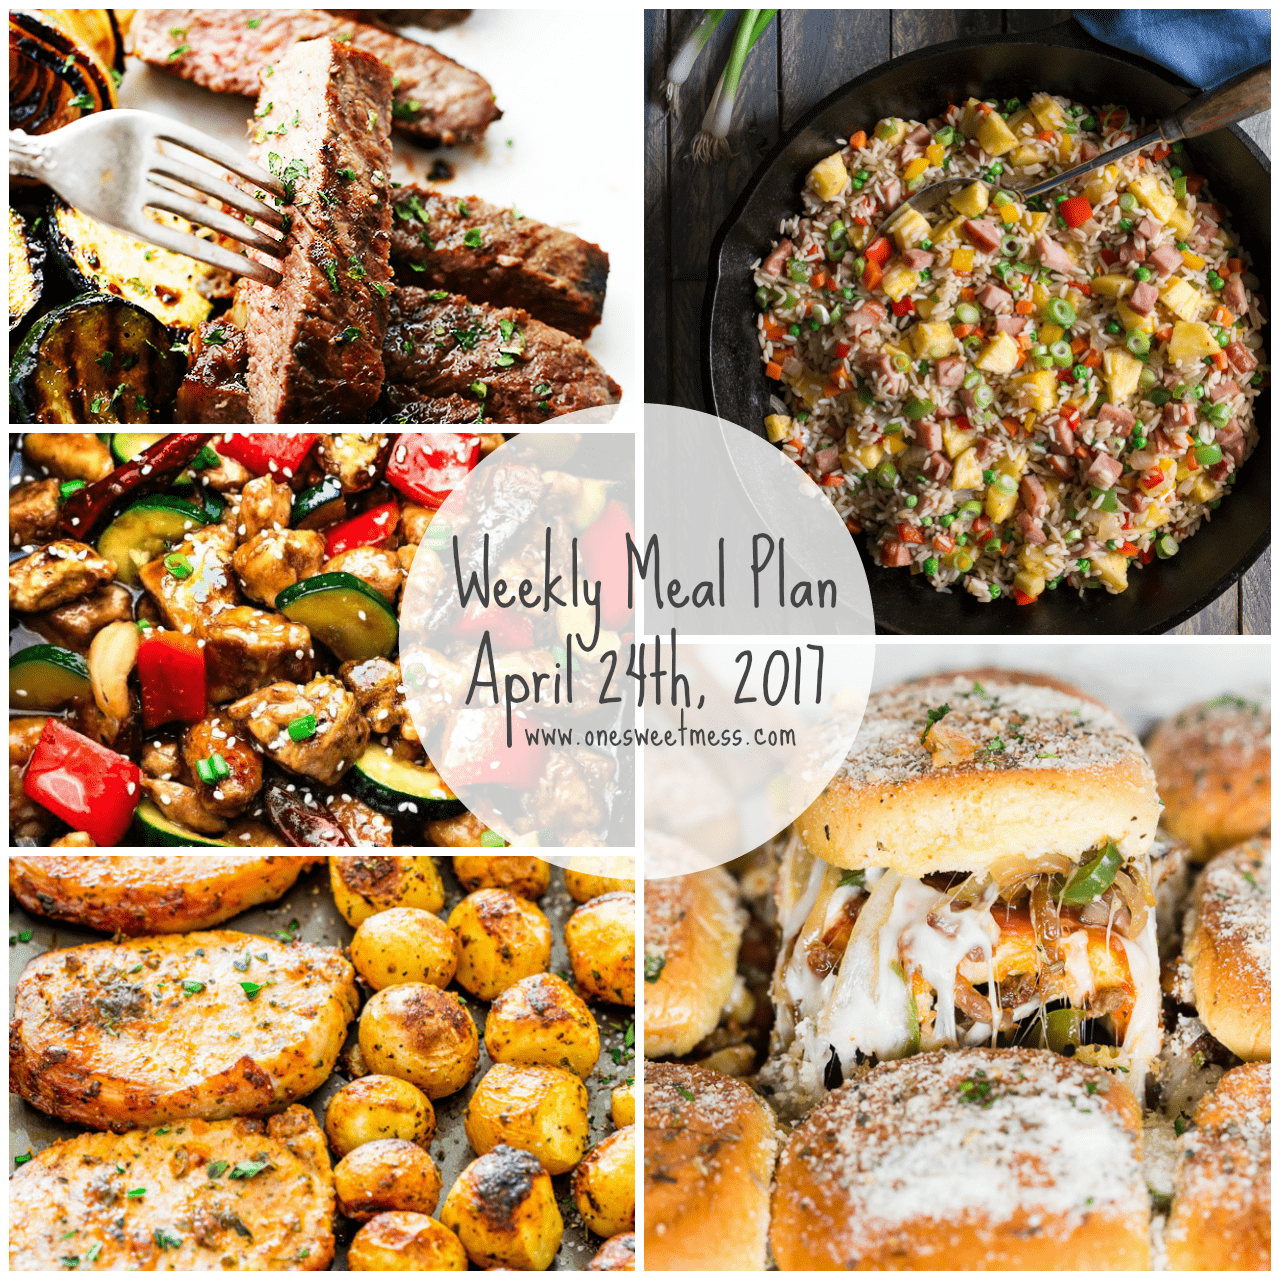 Week of April 24th, 2017 Weekly Meal Plan + Printable Grocery List